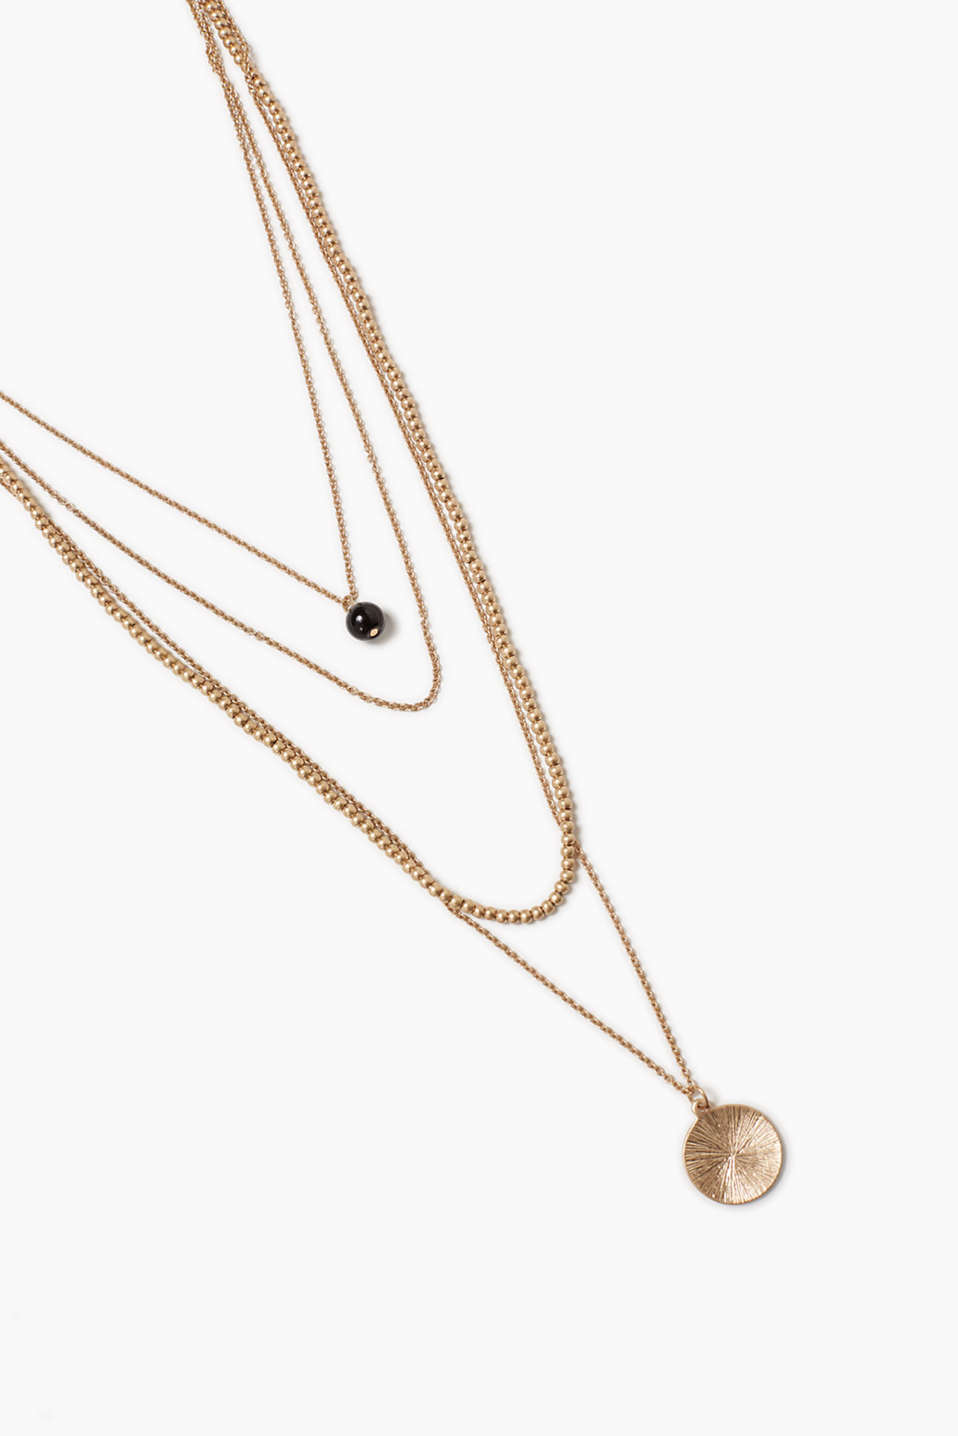 4-in-1 multi-layer necklace in gold-tone metal